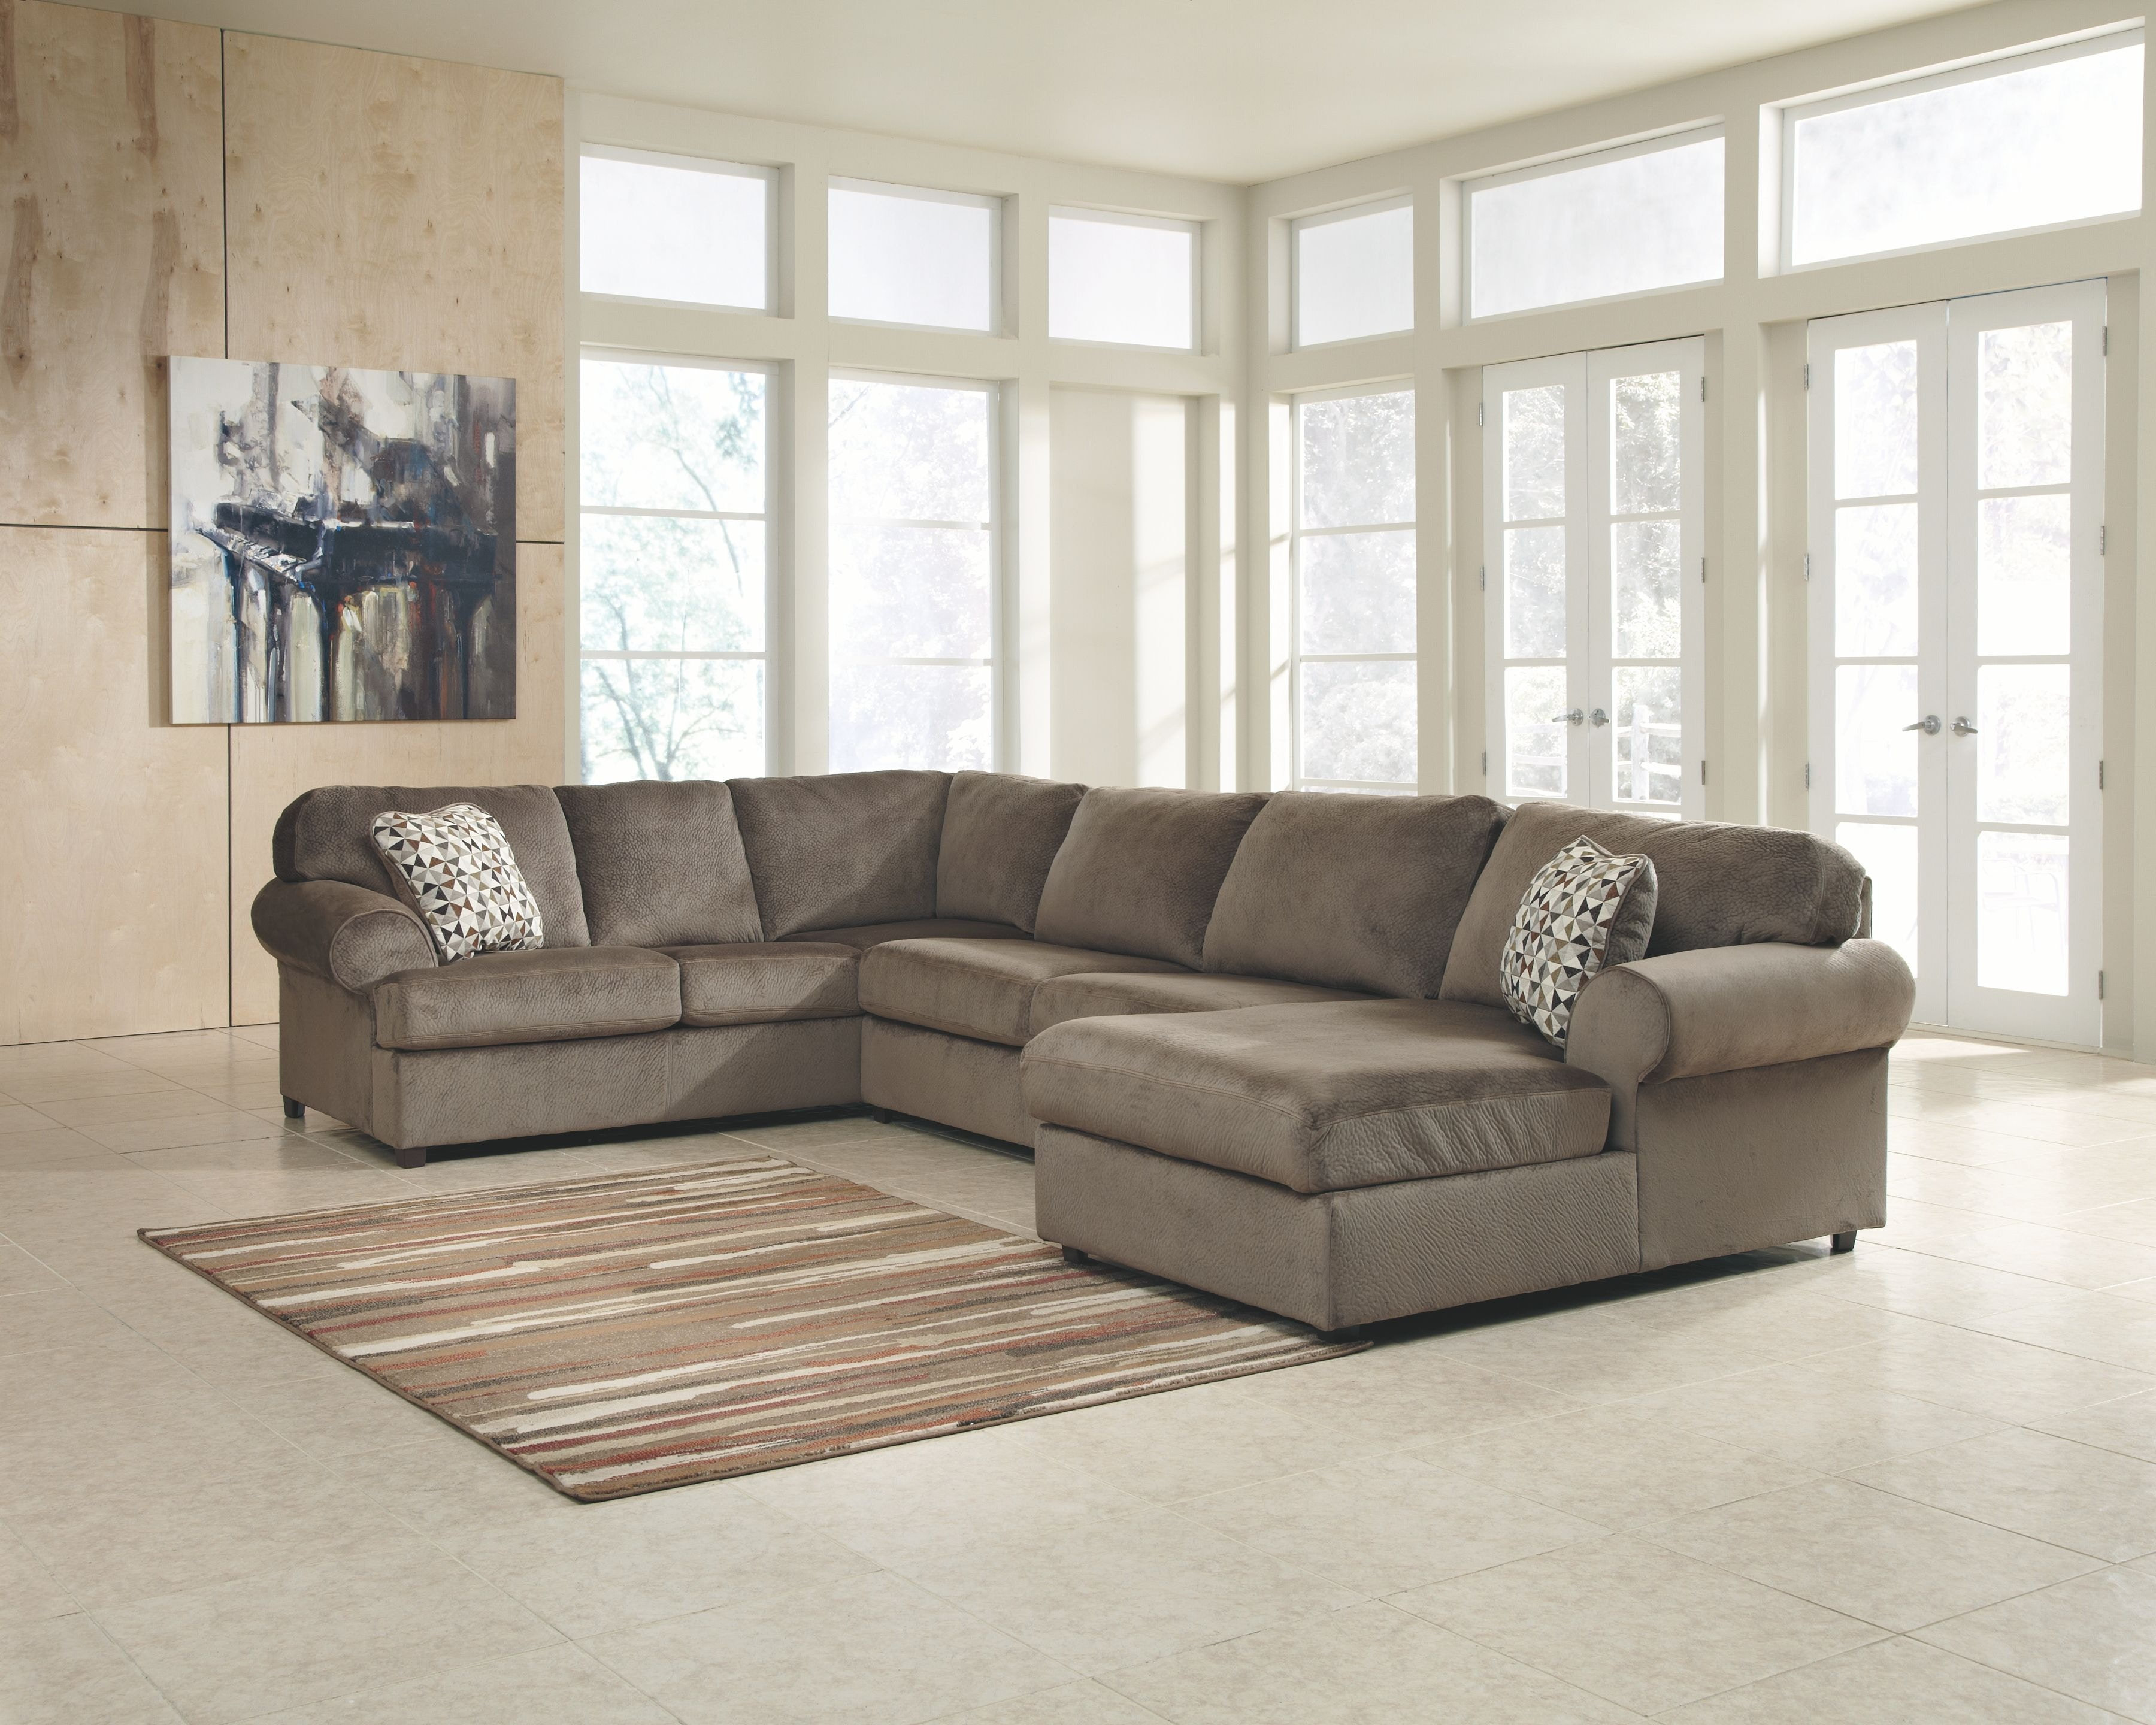 photos of furniture for living room signature design by living room laf sofa 3980266 26719